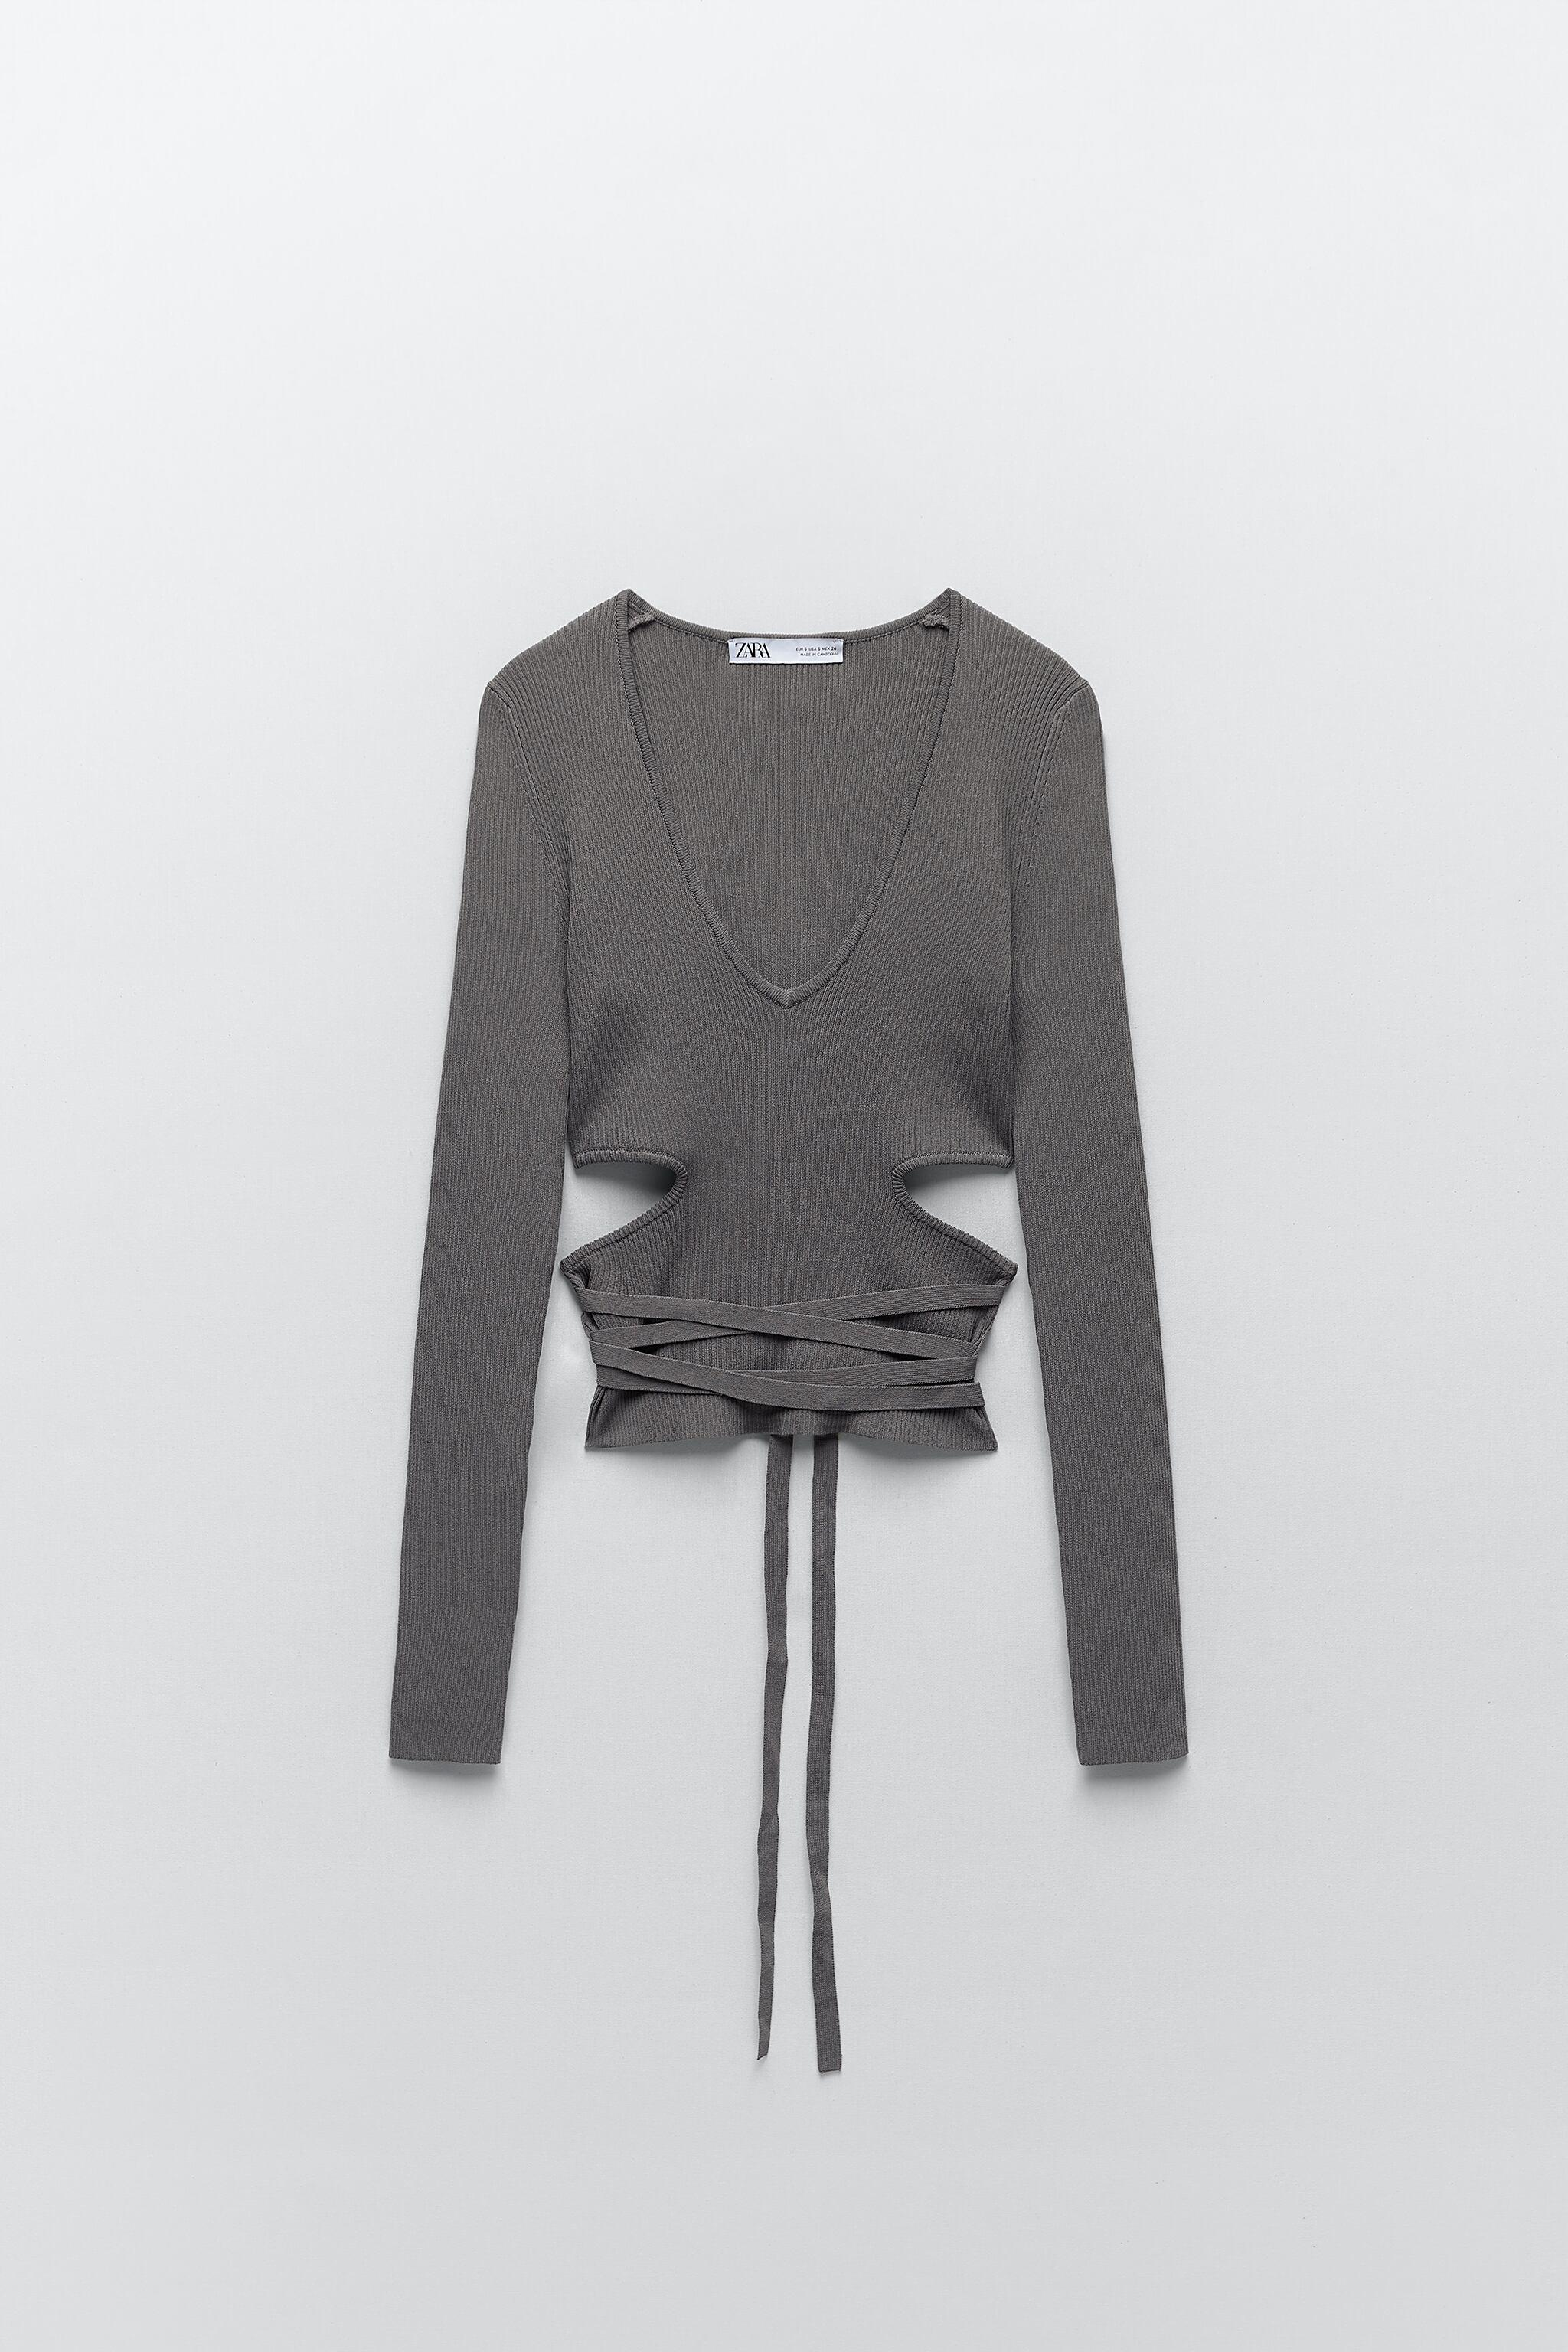 CUT OUT KNIT TOP 5